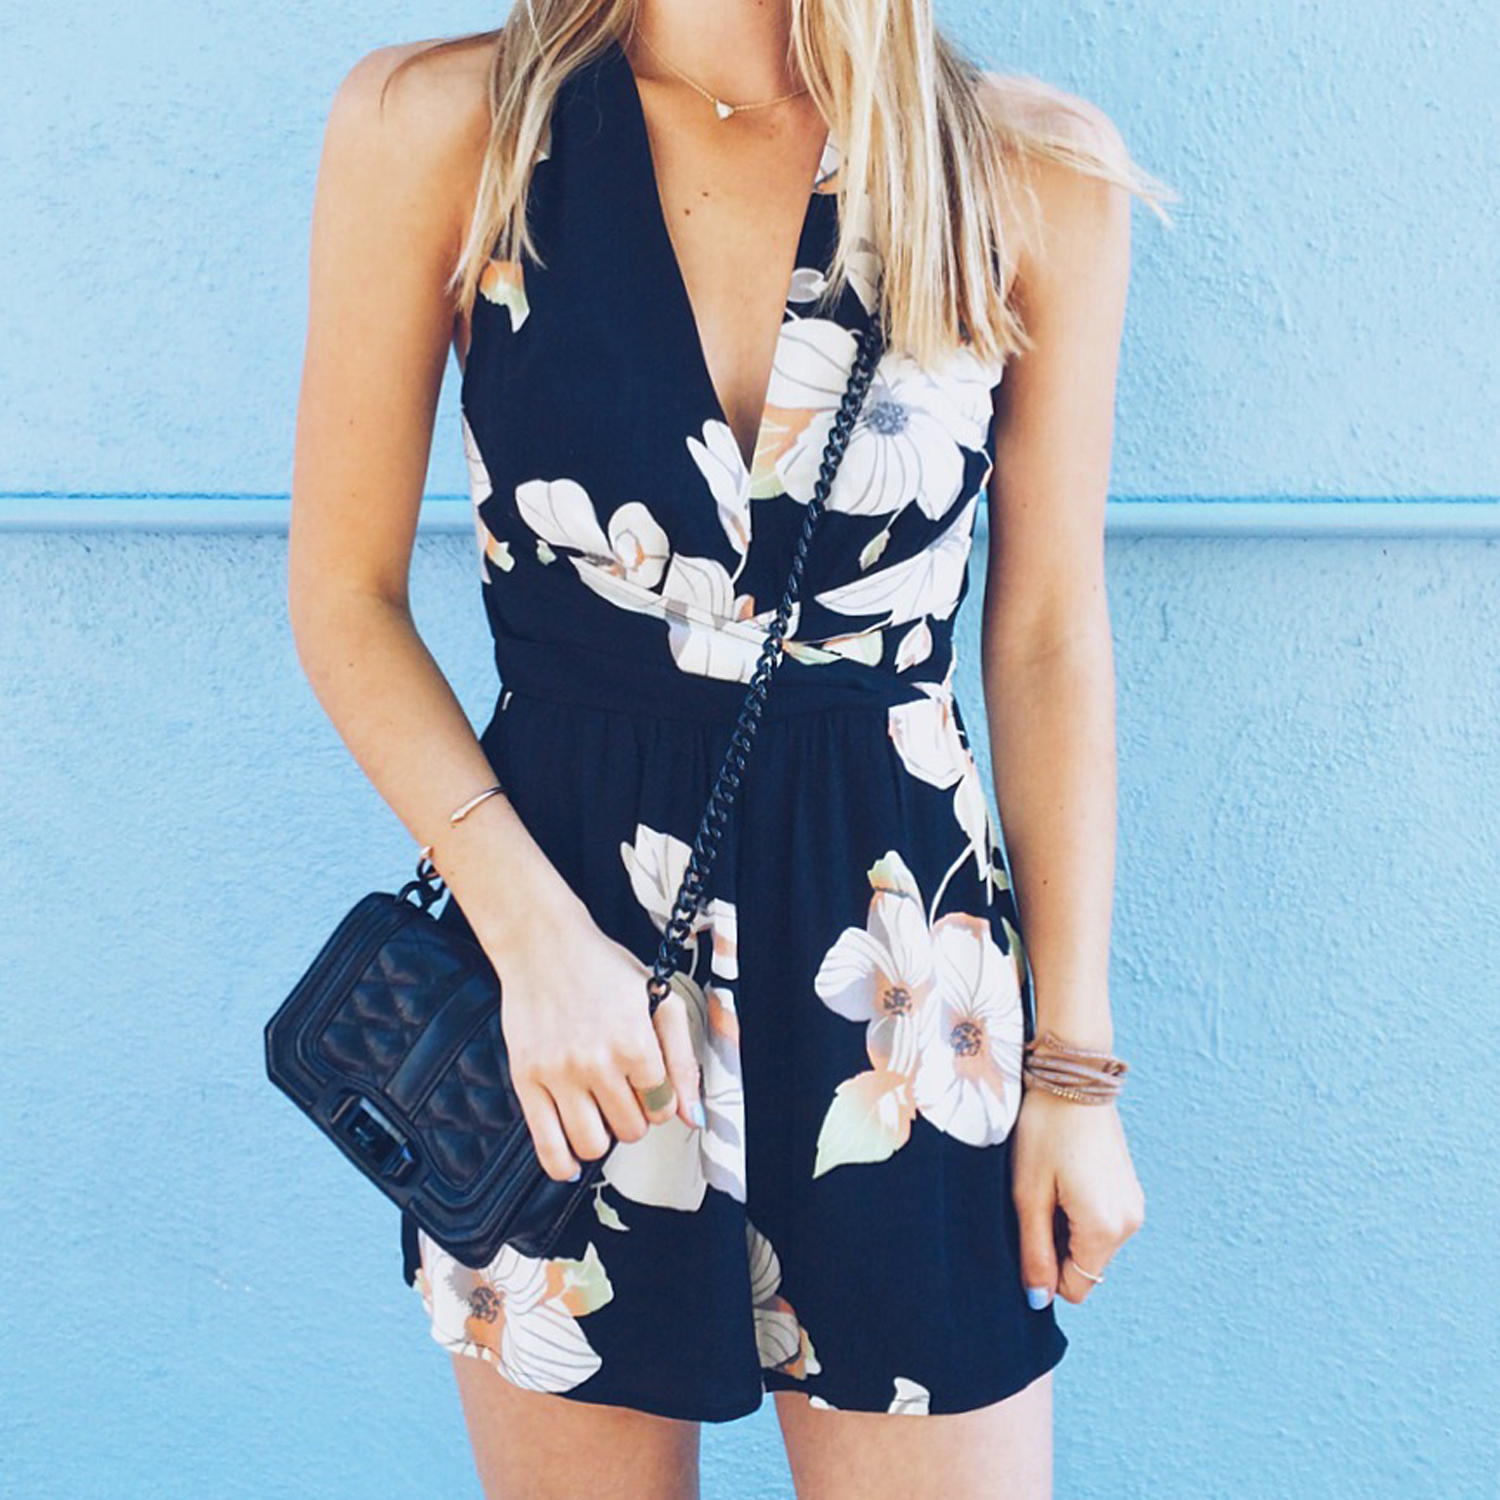 livvyland-blog-olivia-watson-austin-texas-fashion-blogger-floral-romper-rebecca-minkoff-mini-love-affair-handbag